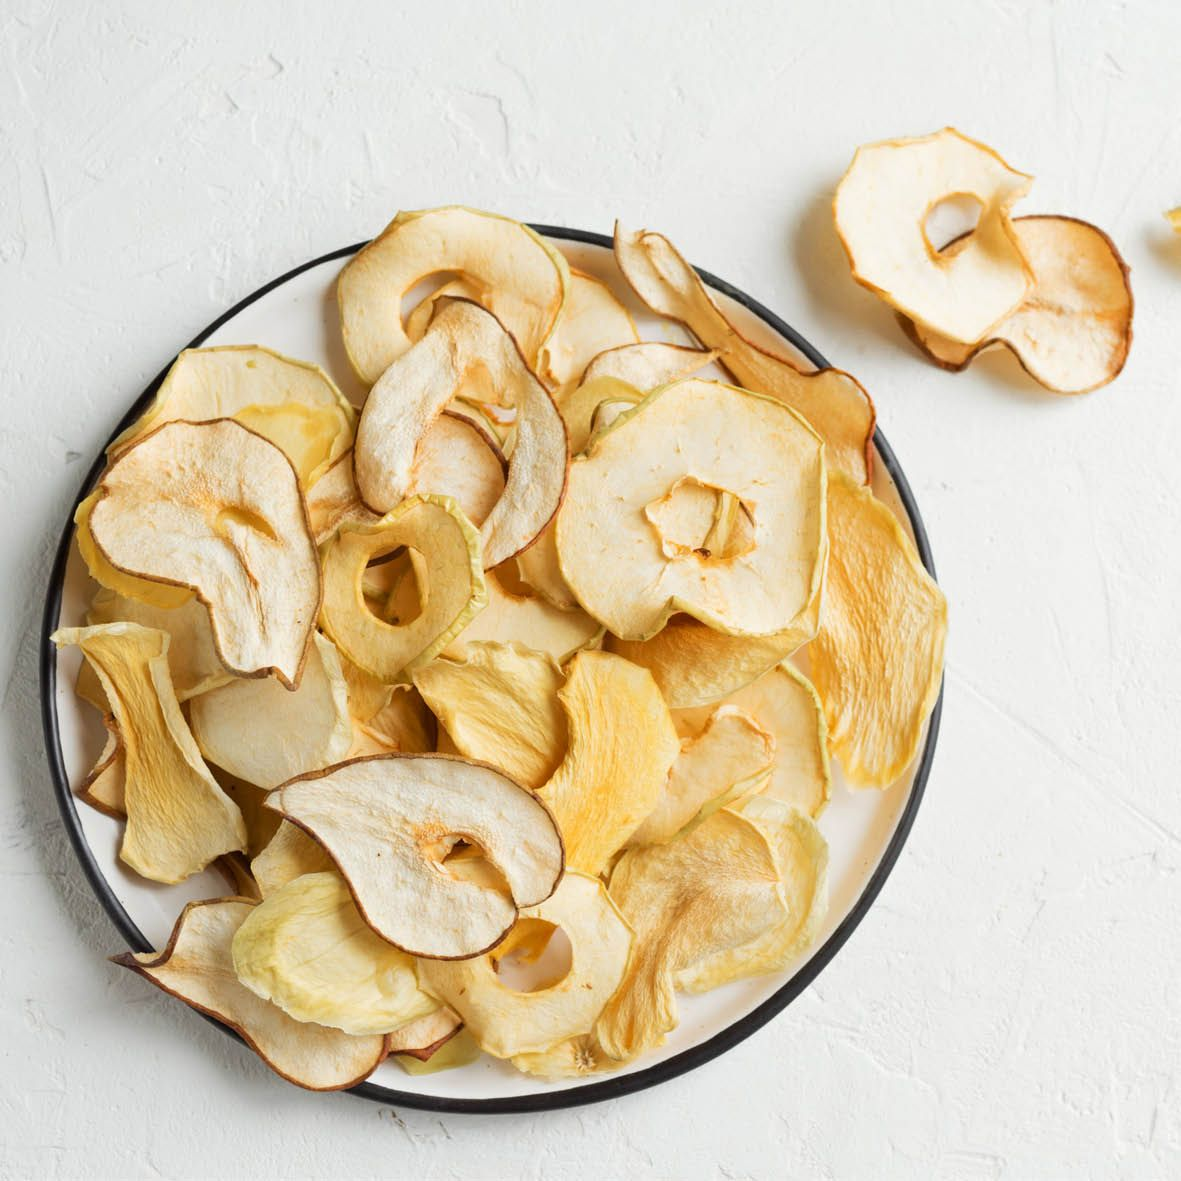 pear_and_apple_chips.jpg